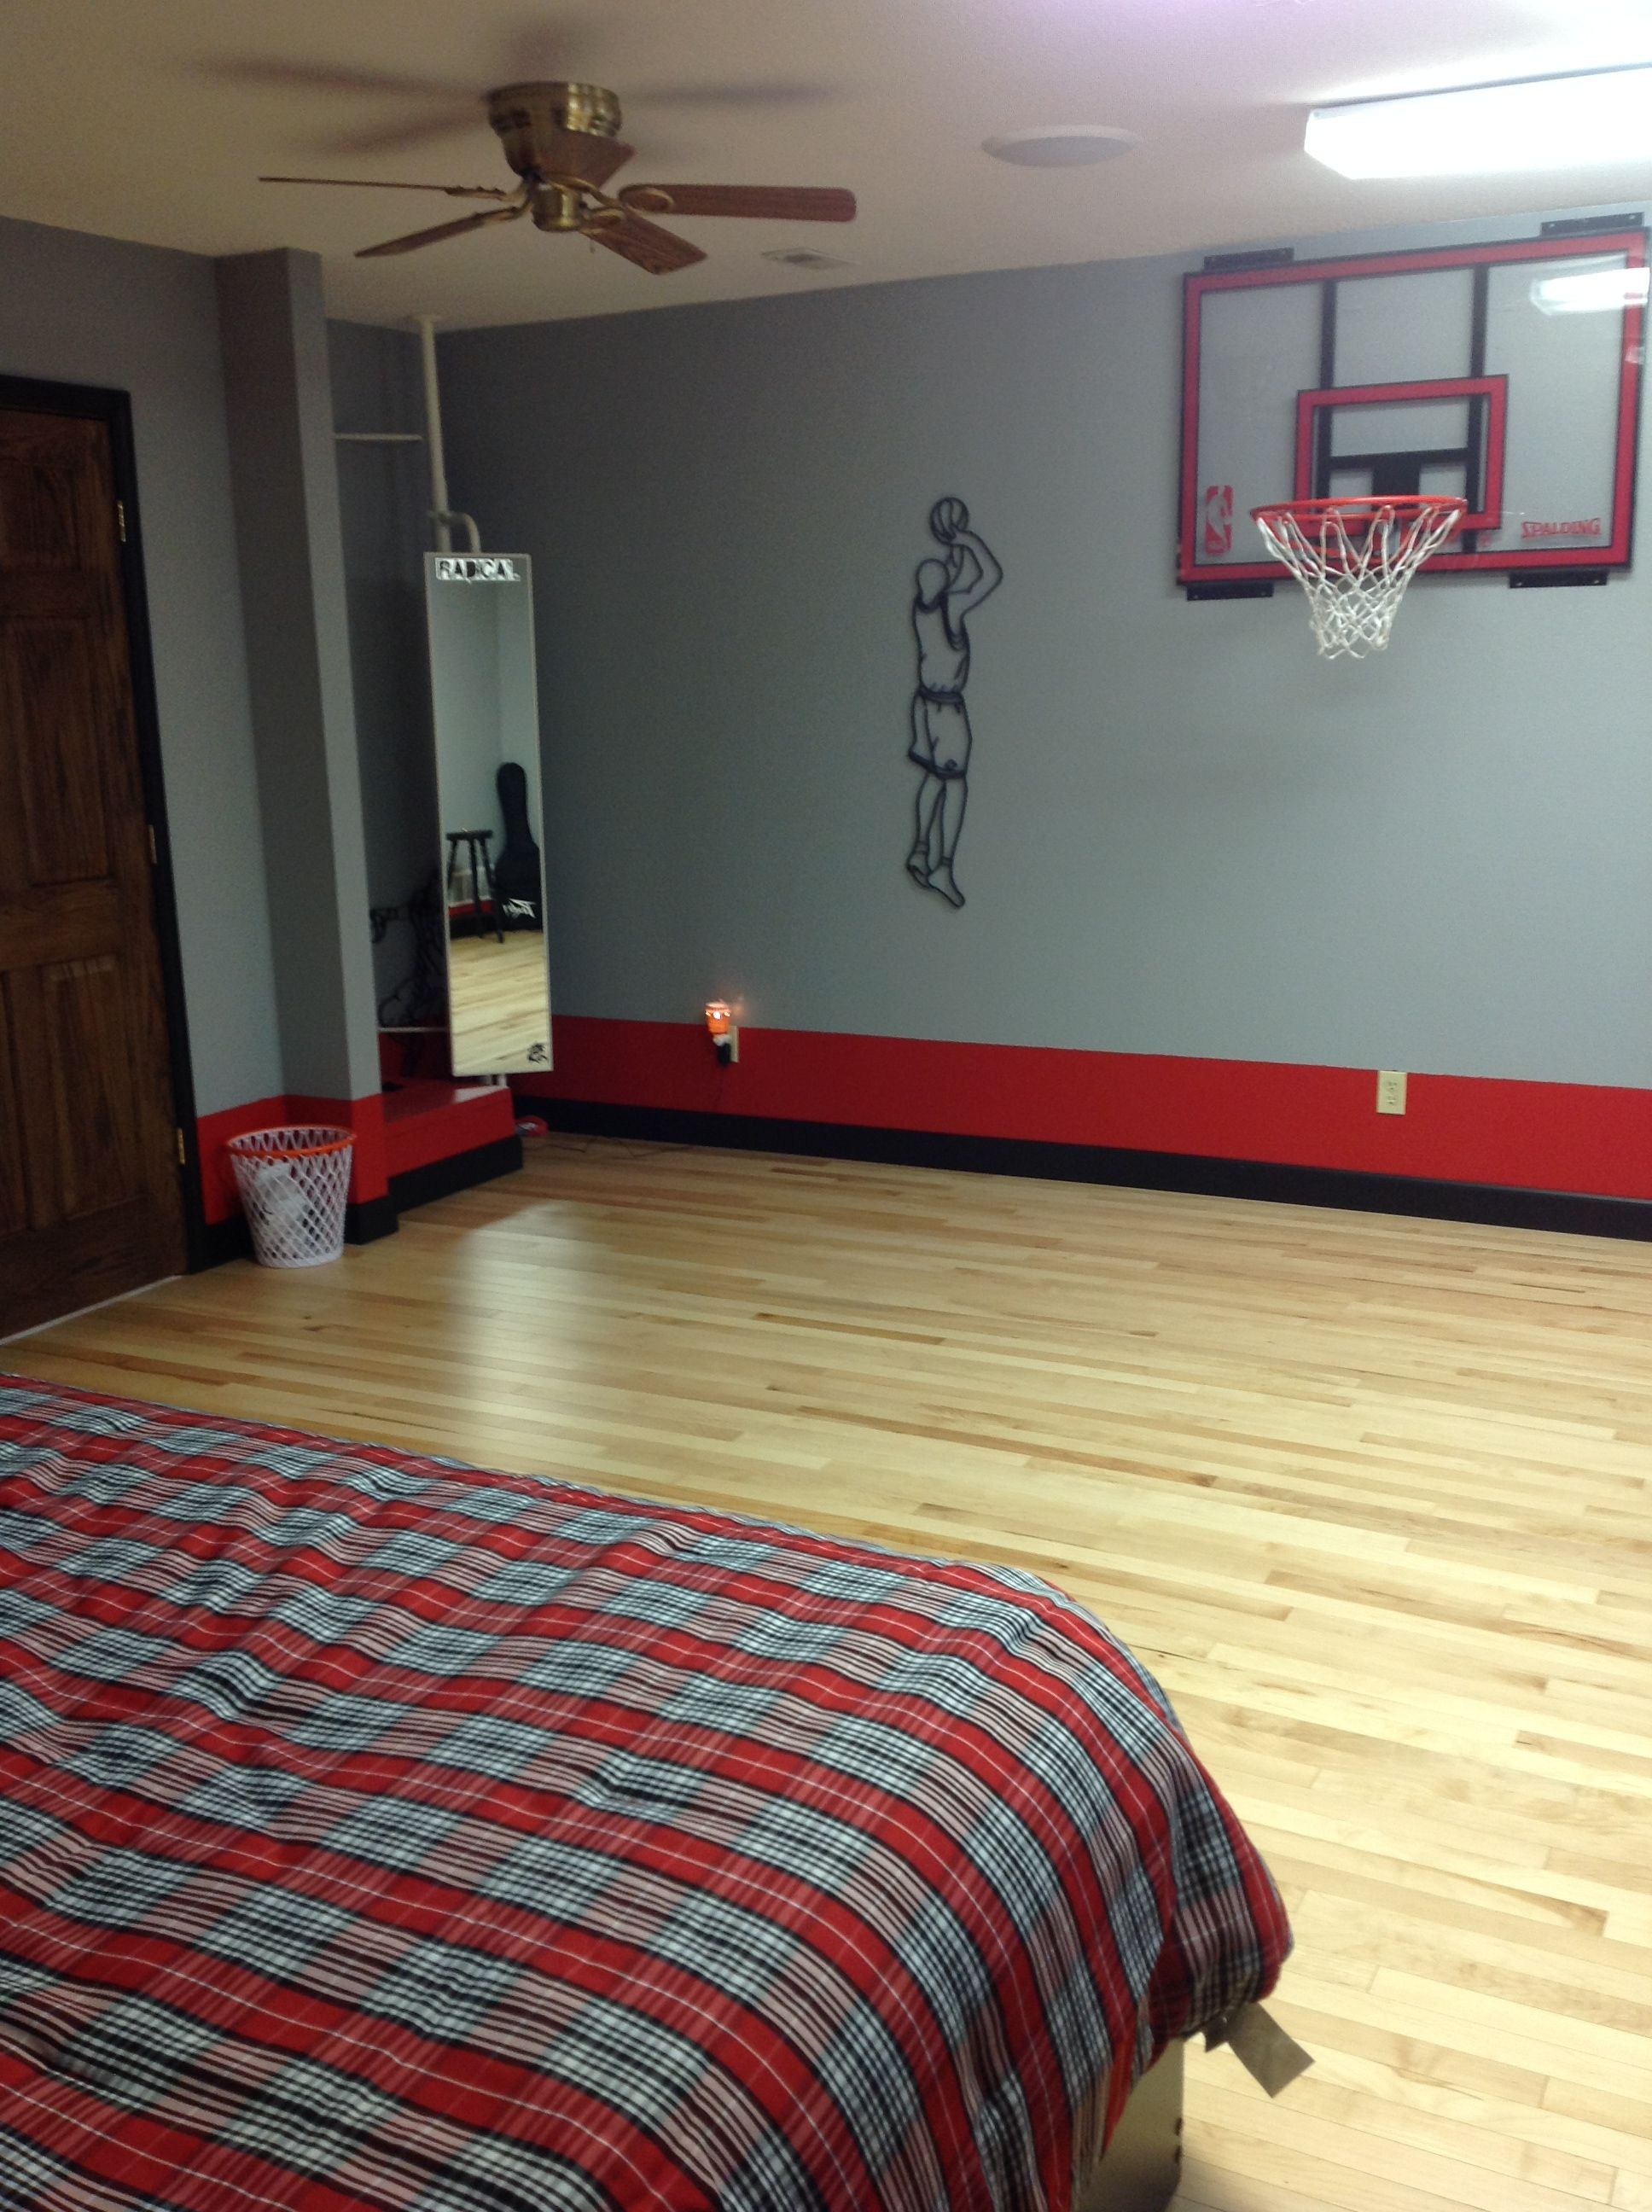 Pin By Marilyn Bohannan On E S Room Teenage Room Basketball